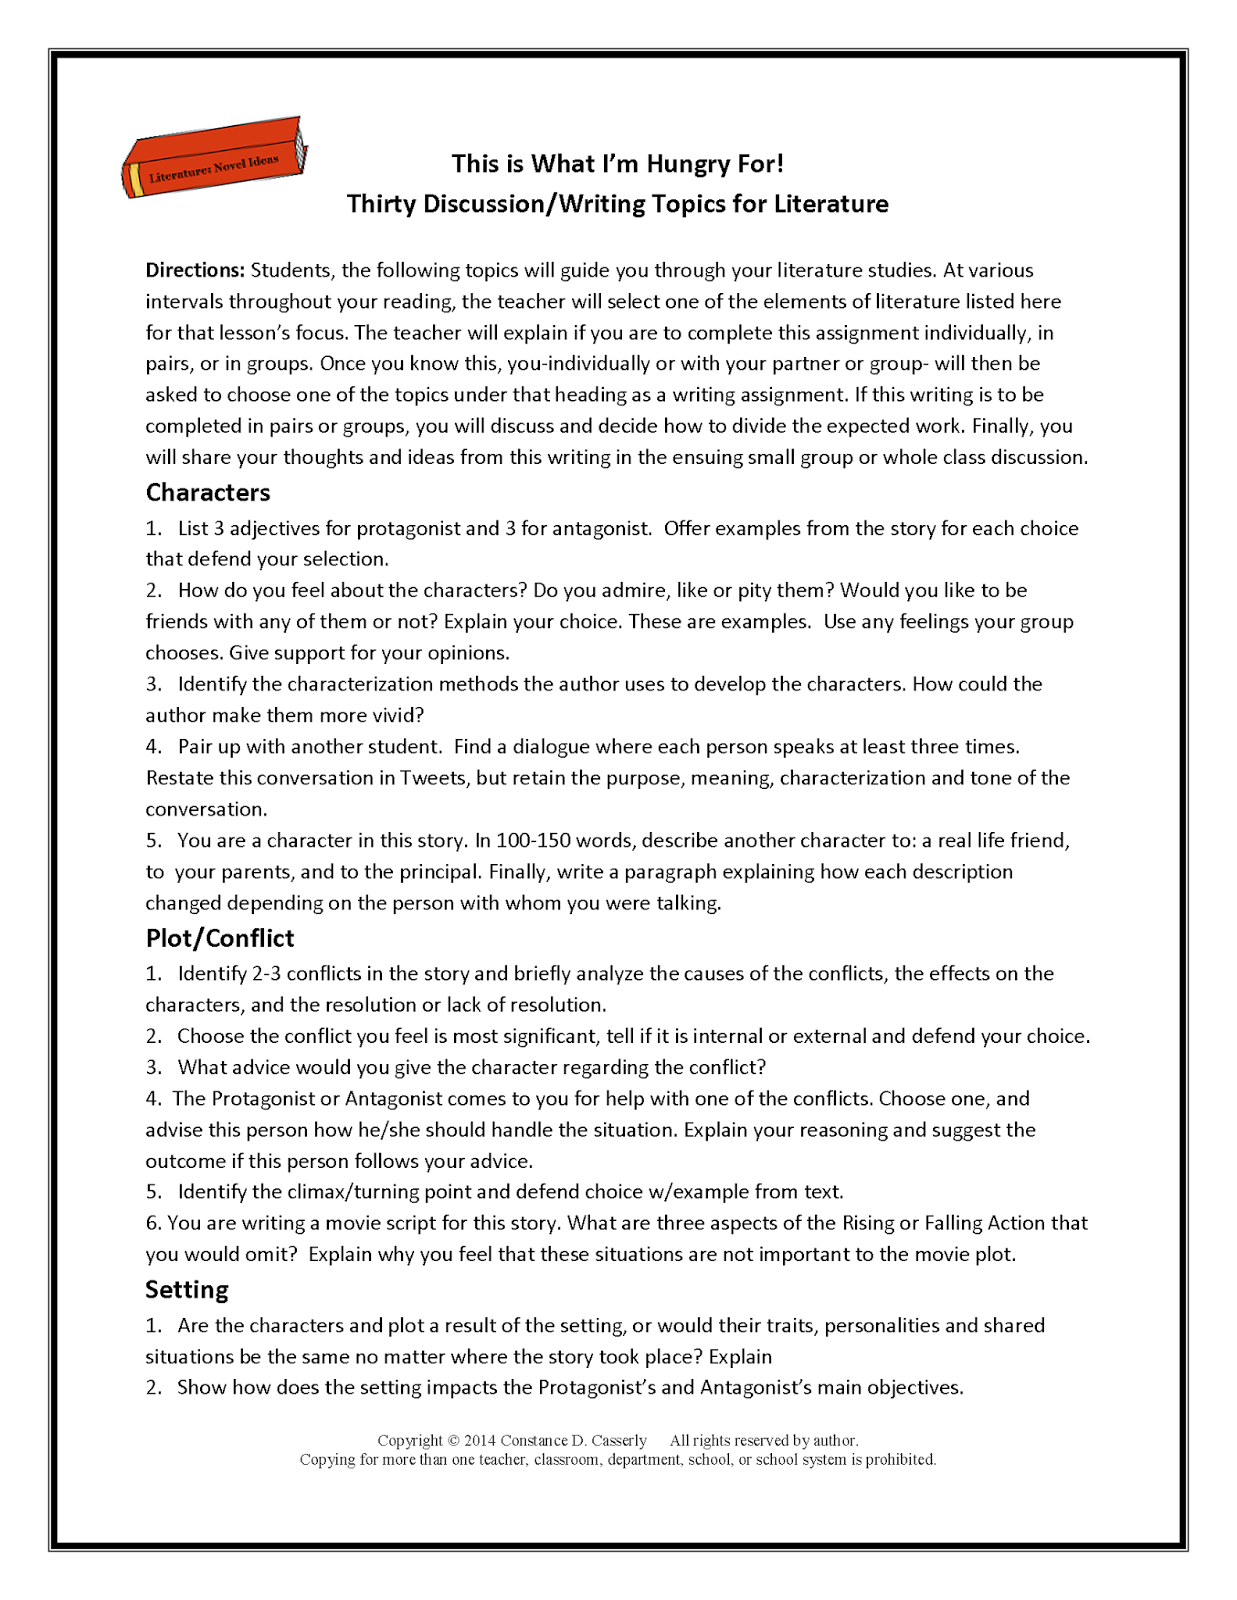 Worksheet Reading Comprehension Packets printables reading comprehension worksheets for middle school teach it write february frenzy fabulous five packet this